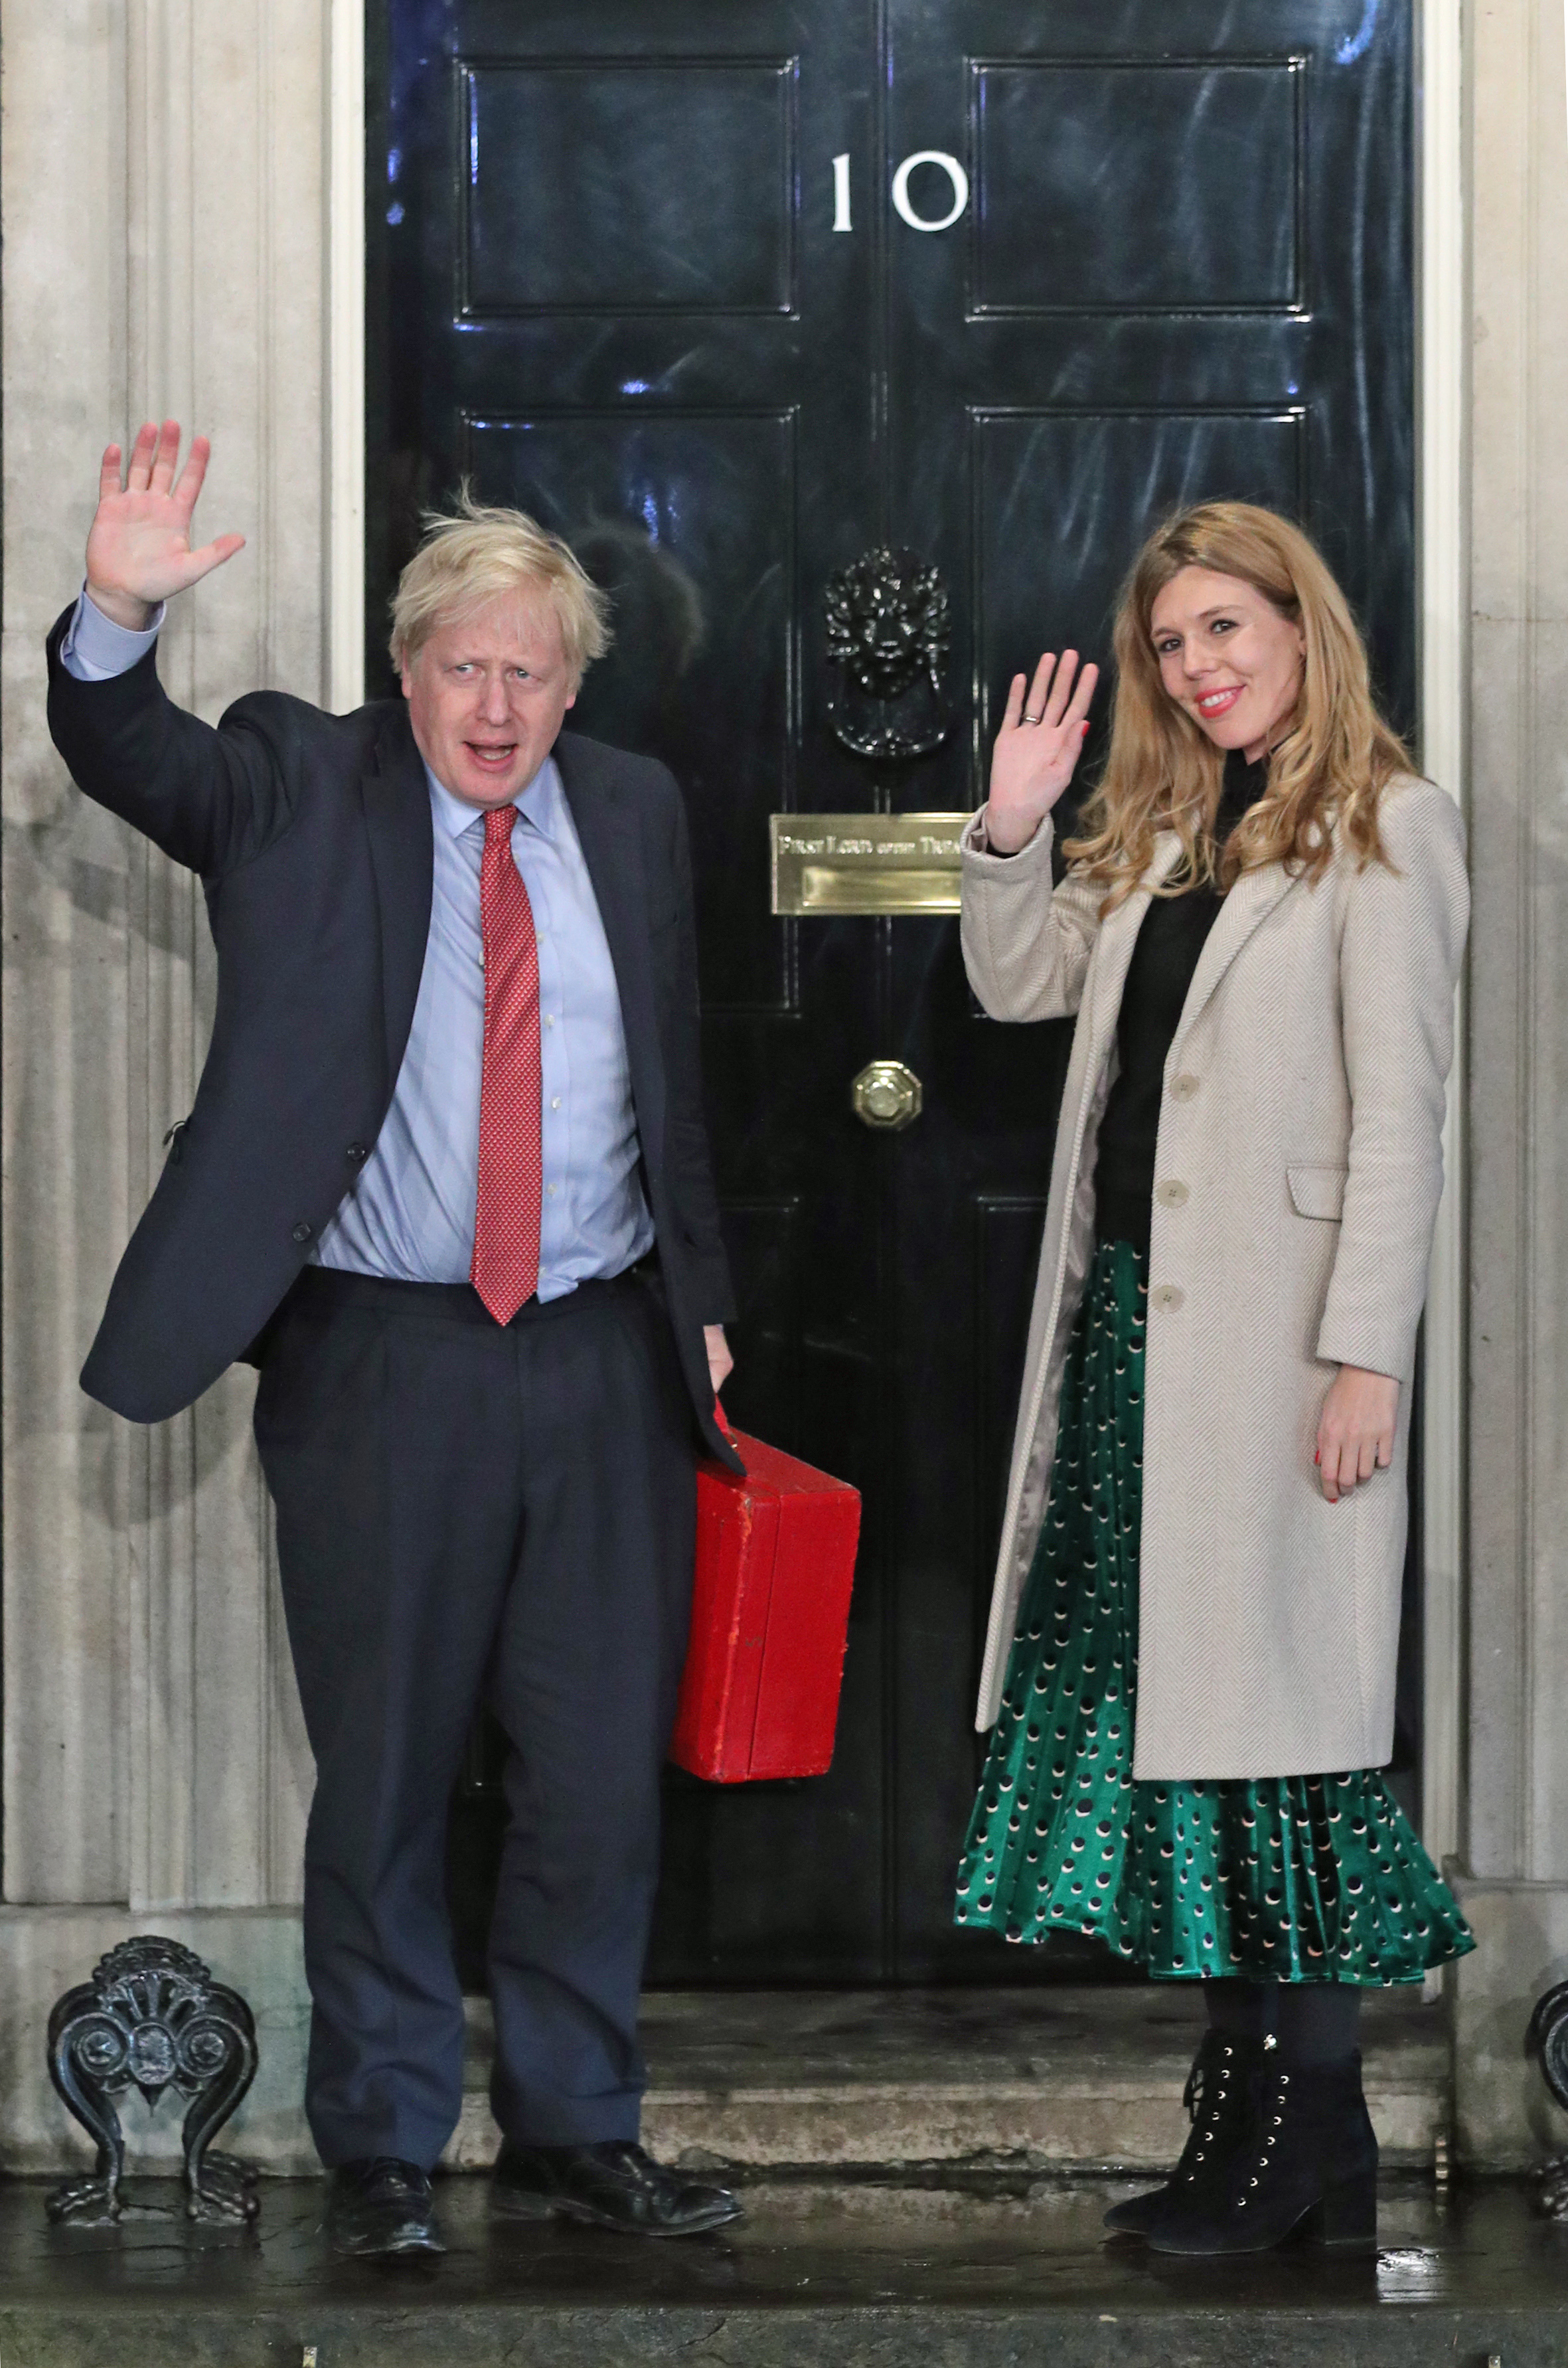 Prime Minister Boris Johnson and his girlfriend Carrie Symonds arrive in Downing Street after the Conservative Party was returned to power in the General Election with an increased majority.